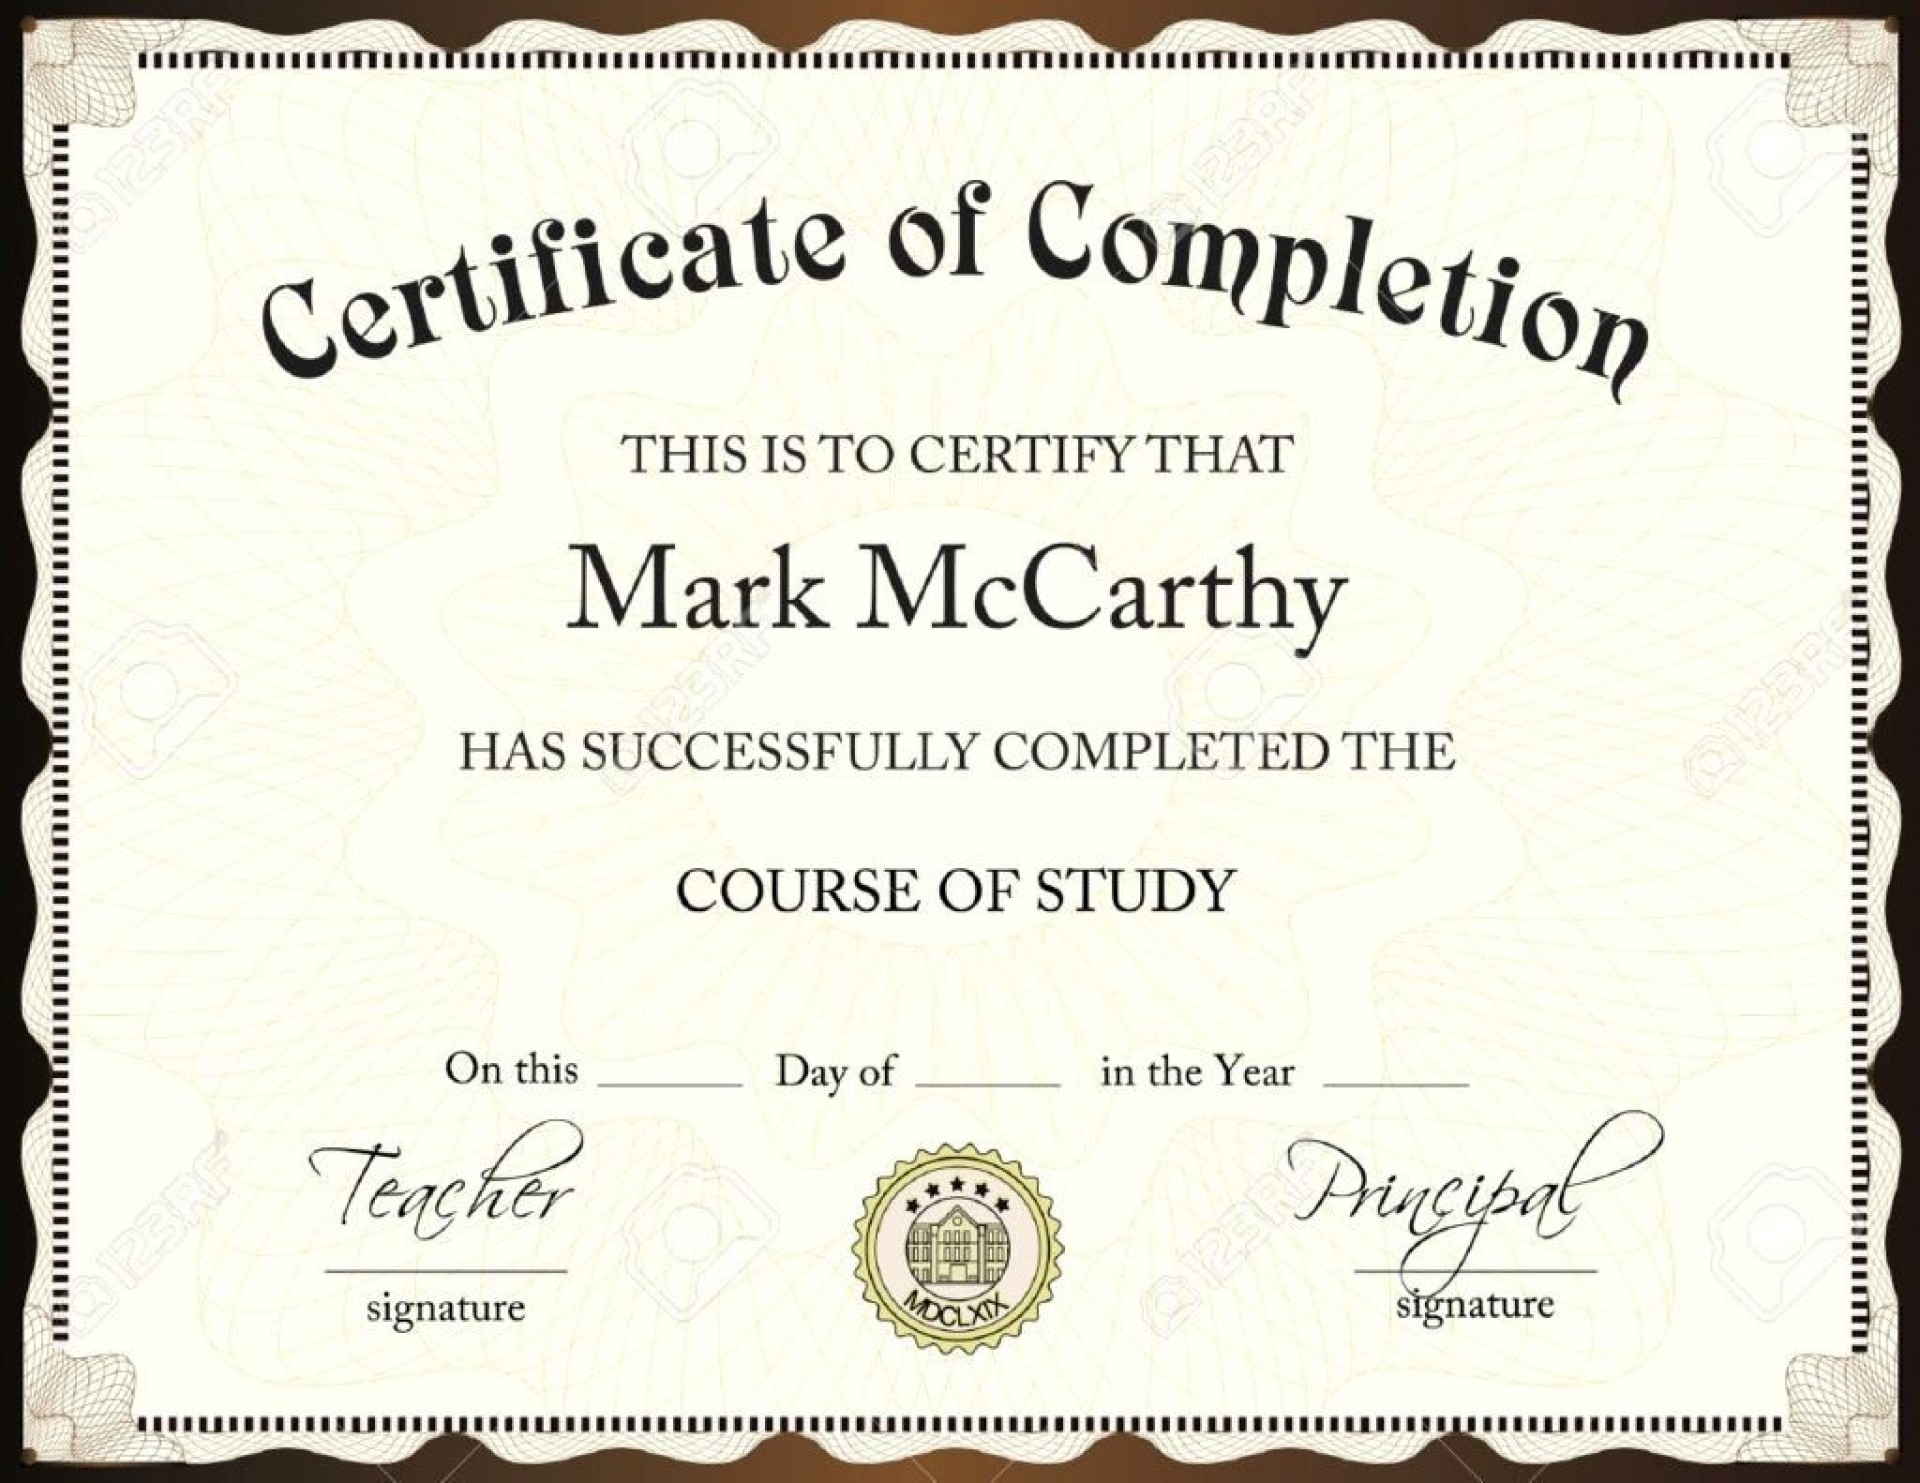 004 Stunning Microsoft Word Certificate Template Photo  2003 Award M Appreciation Of Authenticity1920